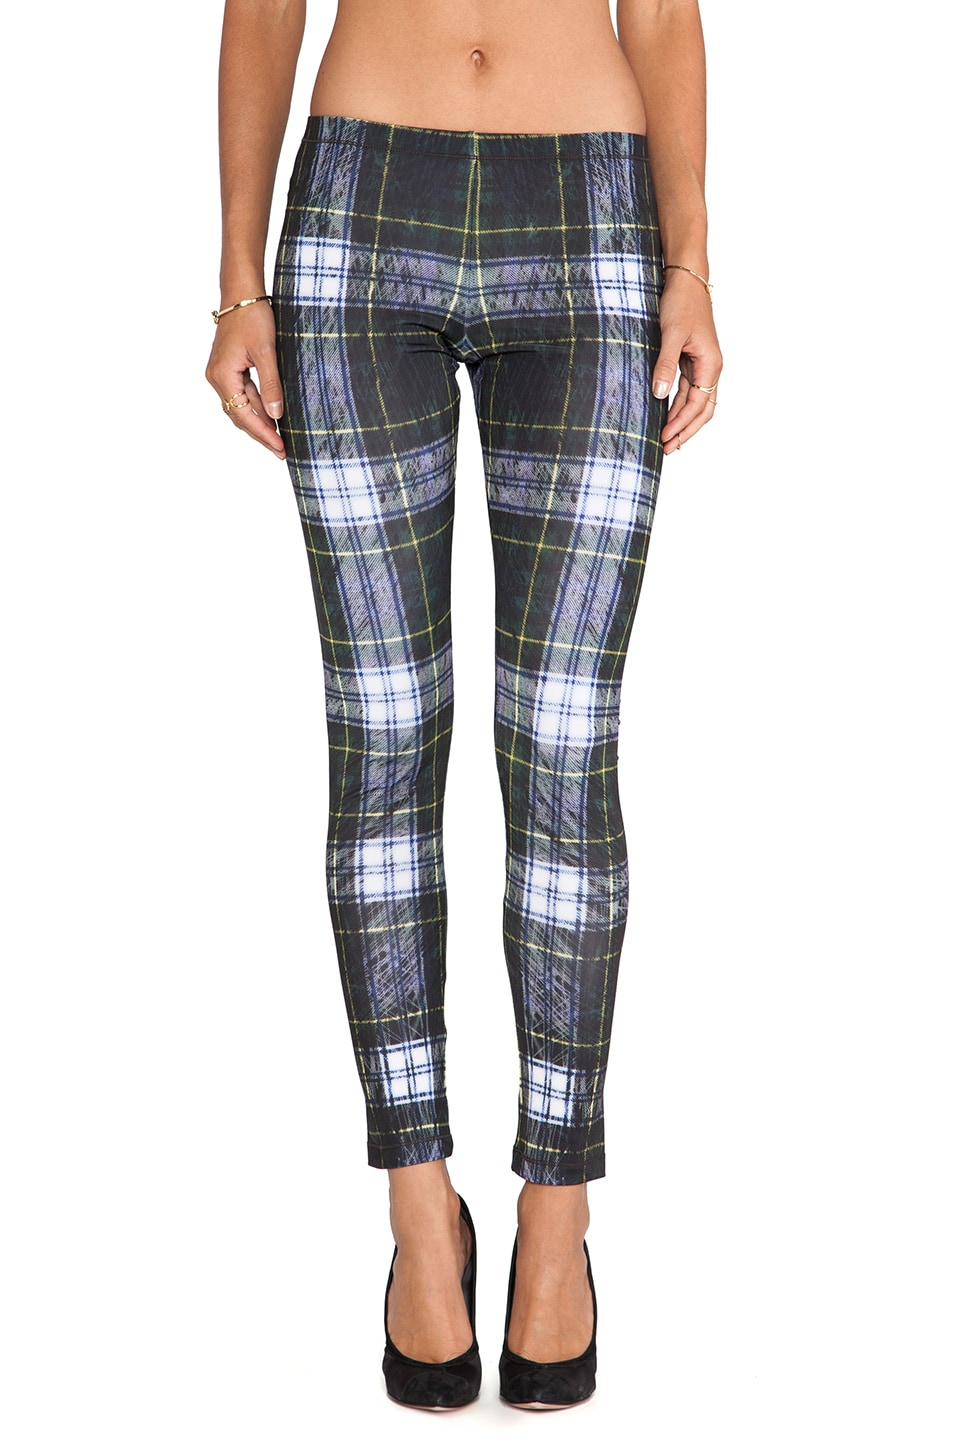 McQ Alexander McQueen Printed Legging in Racing Green